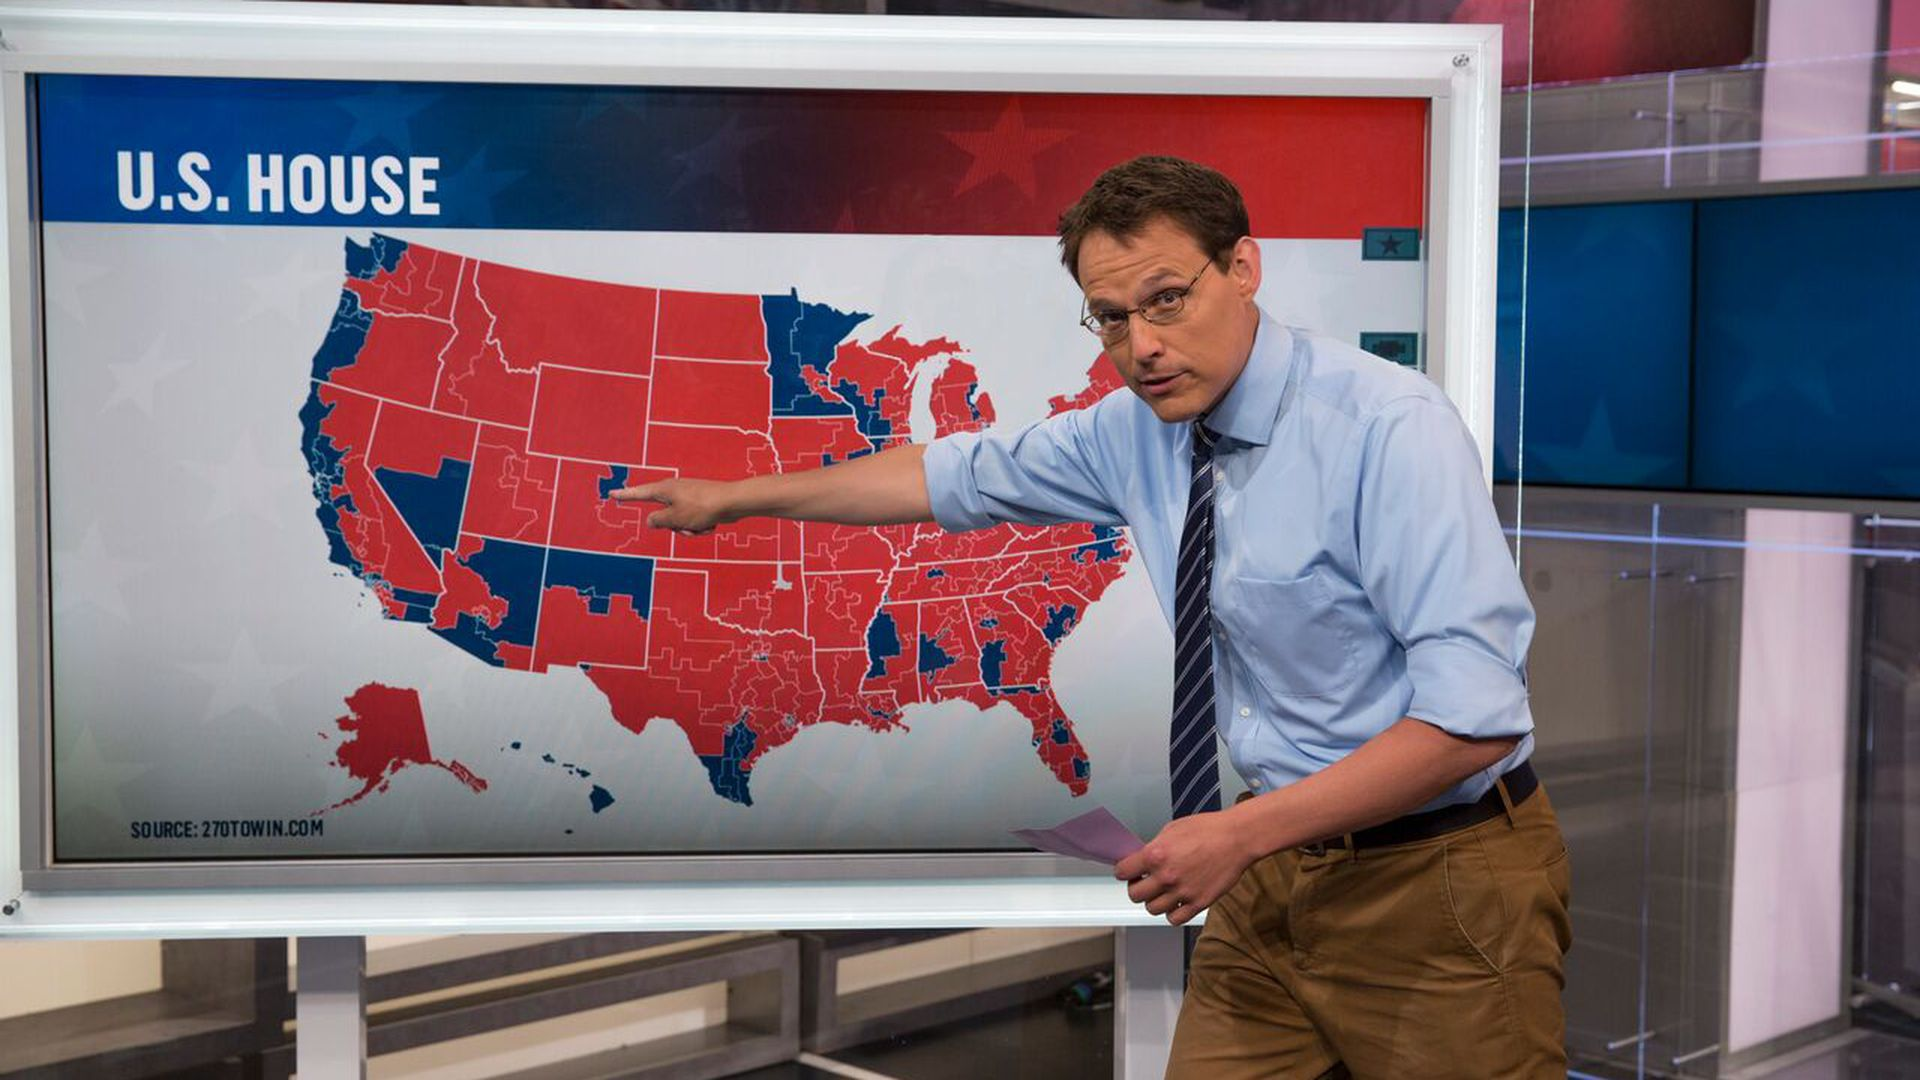 MSNBC's Steve Kornacki in front of an election map